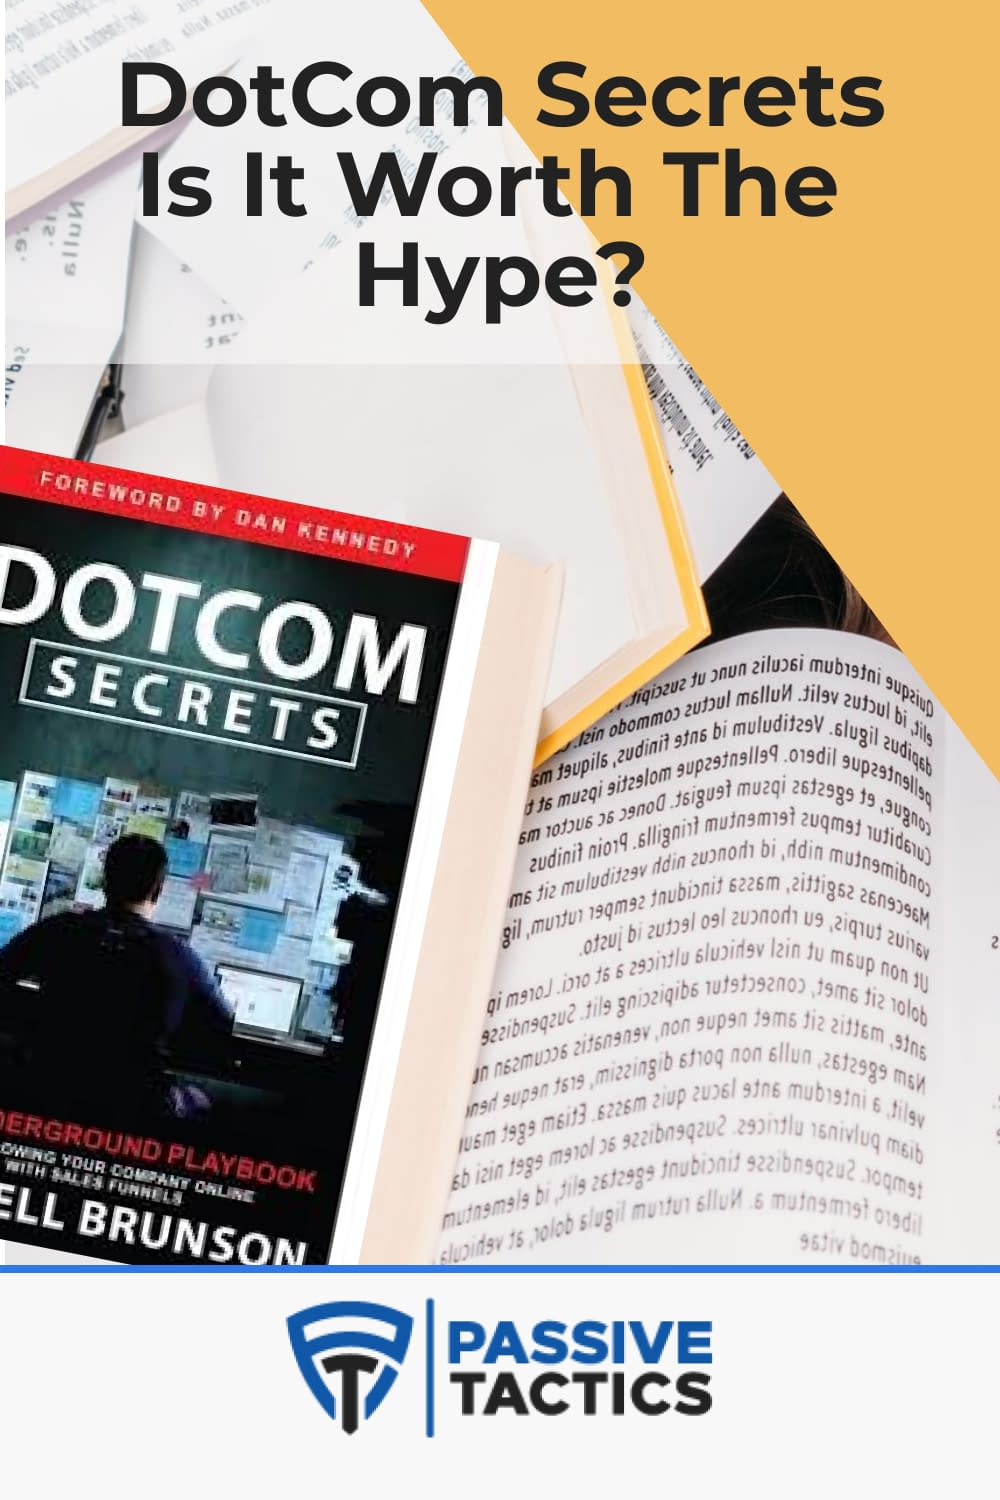 DotCom Secrets Review in 2020: The Ultimate Sales Funnels Guide